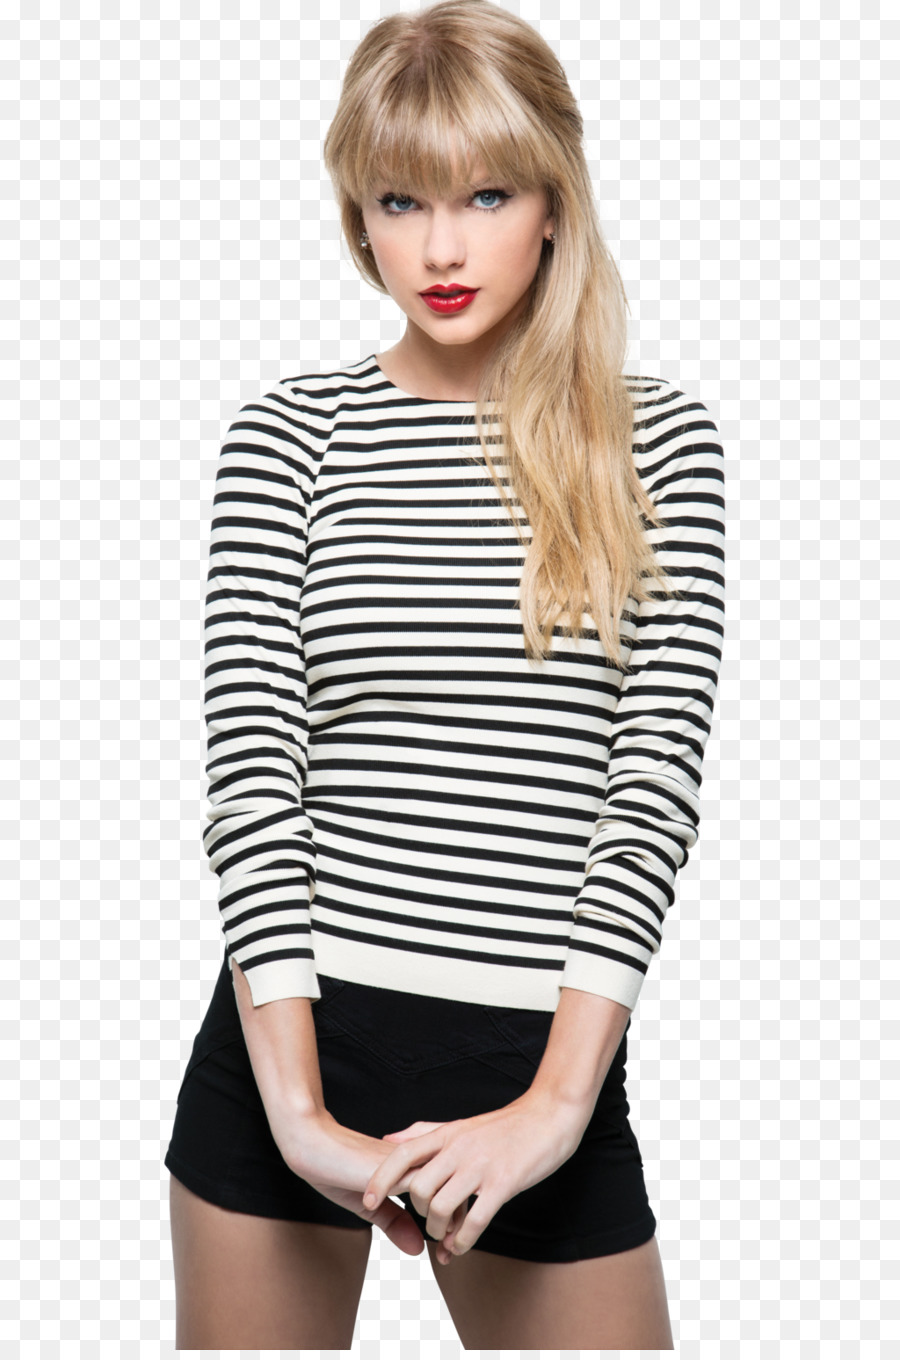 Taylor Swift papel Tapiz de Desktop de Clip art - taylor swift png ...